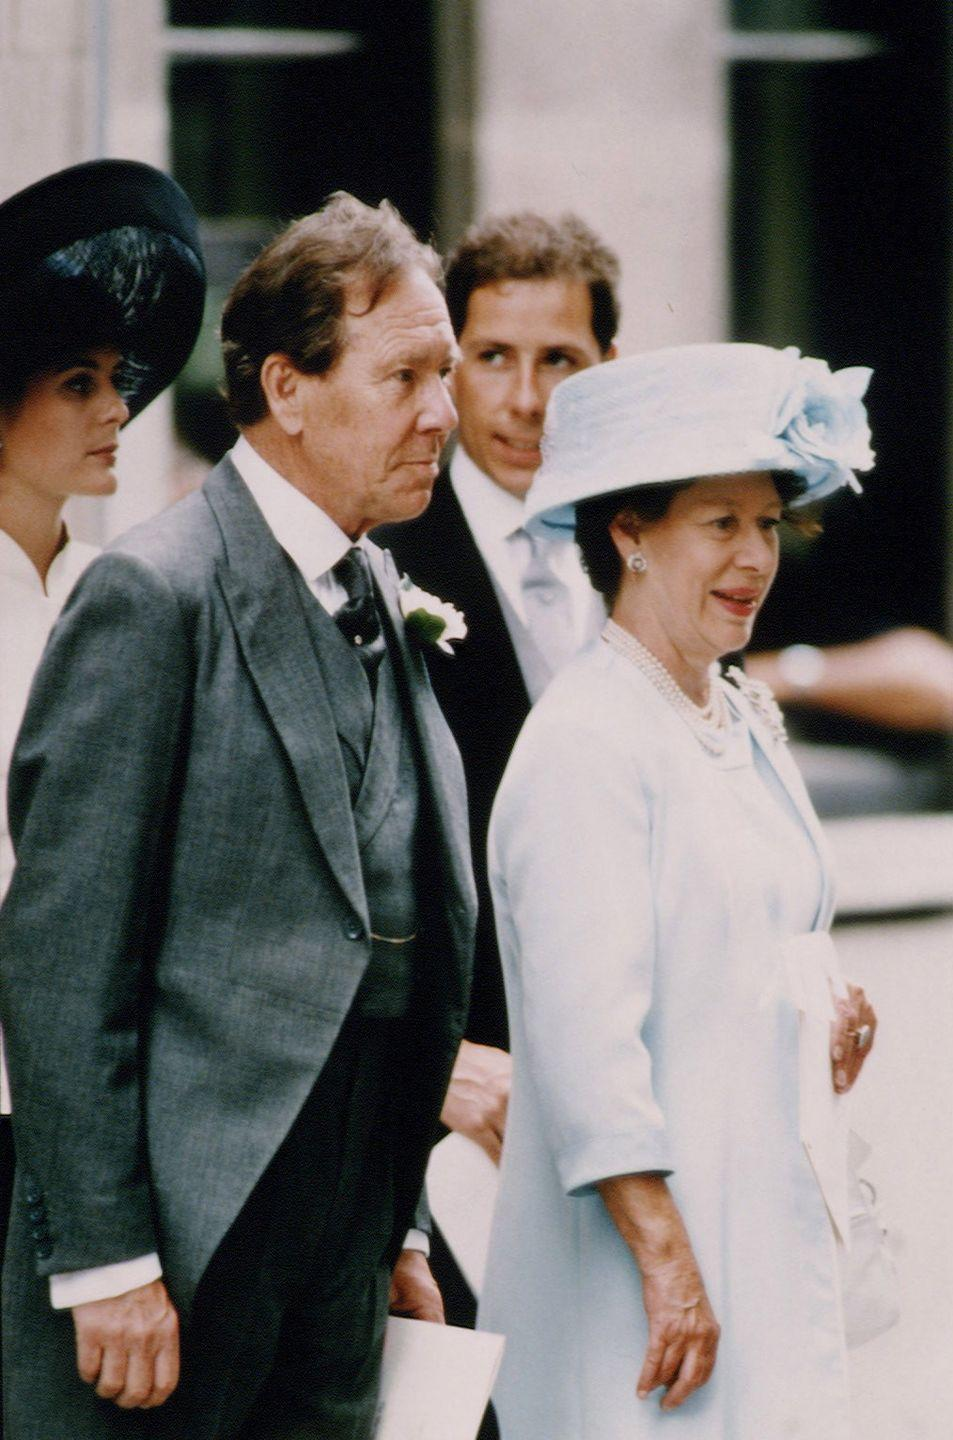 """<p>For her daughter Sarah's wedding, Princess Margaret wore a pale blue hat and dress. Here she is with her ex-husband, Lord Snowdon.</p><p><strong><a href=""""https://www.townandcountrymag.com/society/news/a9255/princess-margaret-lord-snowdon-relationship/"""" rel=""""nofollow noopener"""" target=""""_blank"""" data-ylk=""""slk:More: The True Story of Princess Margaret and Antony Armstrong-Jones's Love Affair"""" class=""""link rapid-noclick-resp"""">More: The True Story of Princess Margaret and Antony Armstrong-Jones's Love Affair</a></strong><br></p>"""